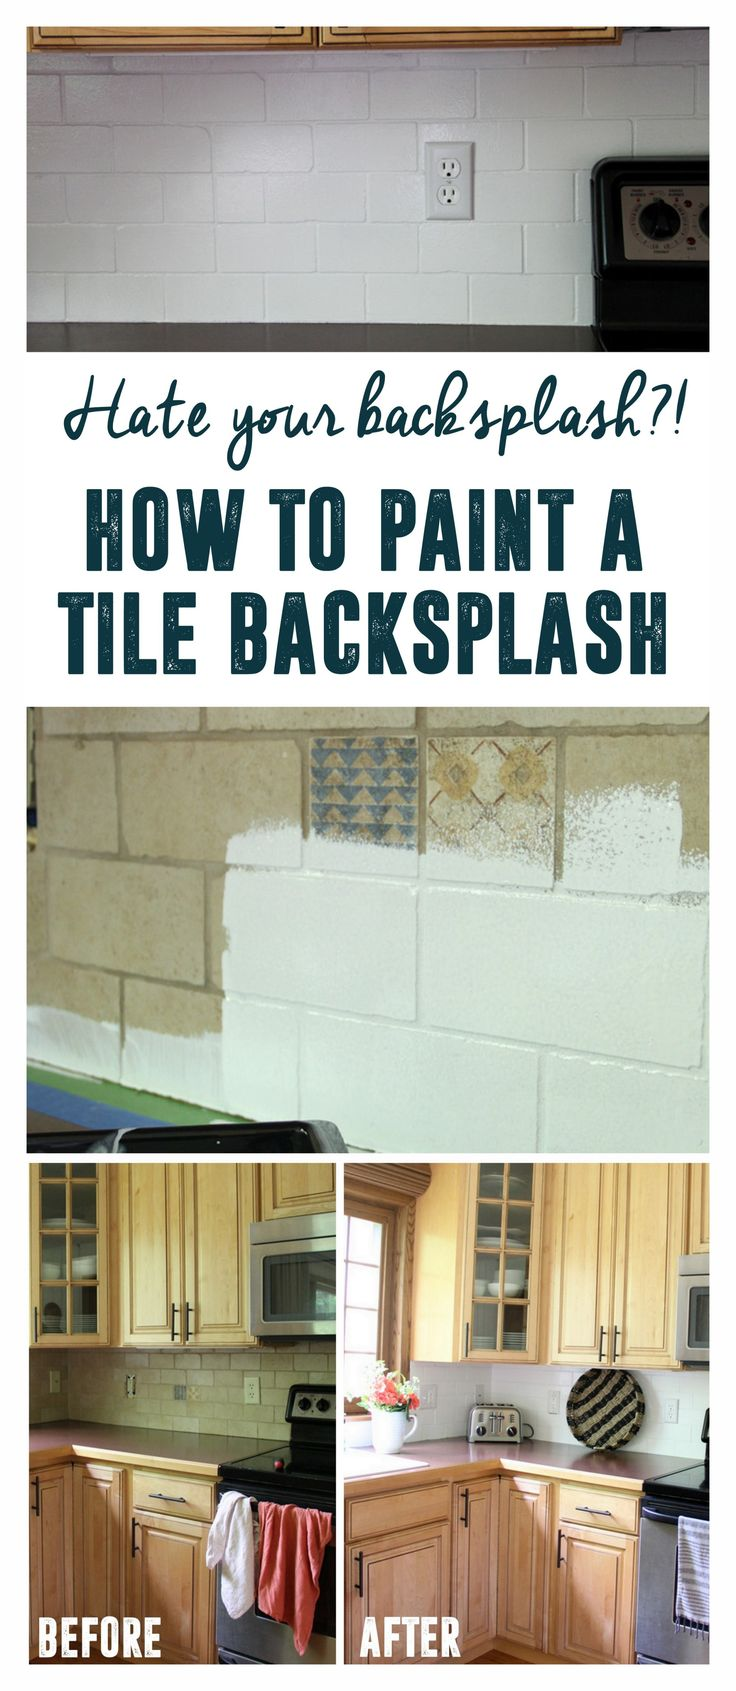 23 best covering ugly tile images on pinterest cook do it 23 best covering ugly tile images on pinterest cook do it yourself and furniture dailygadgetfo Gallery